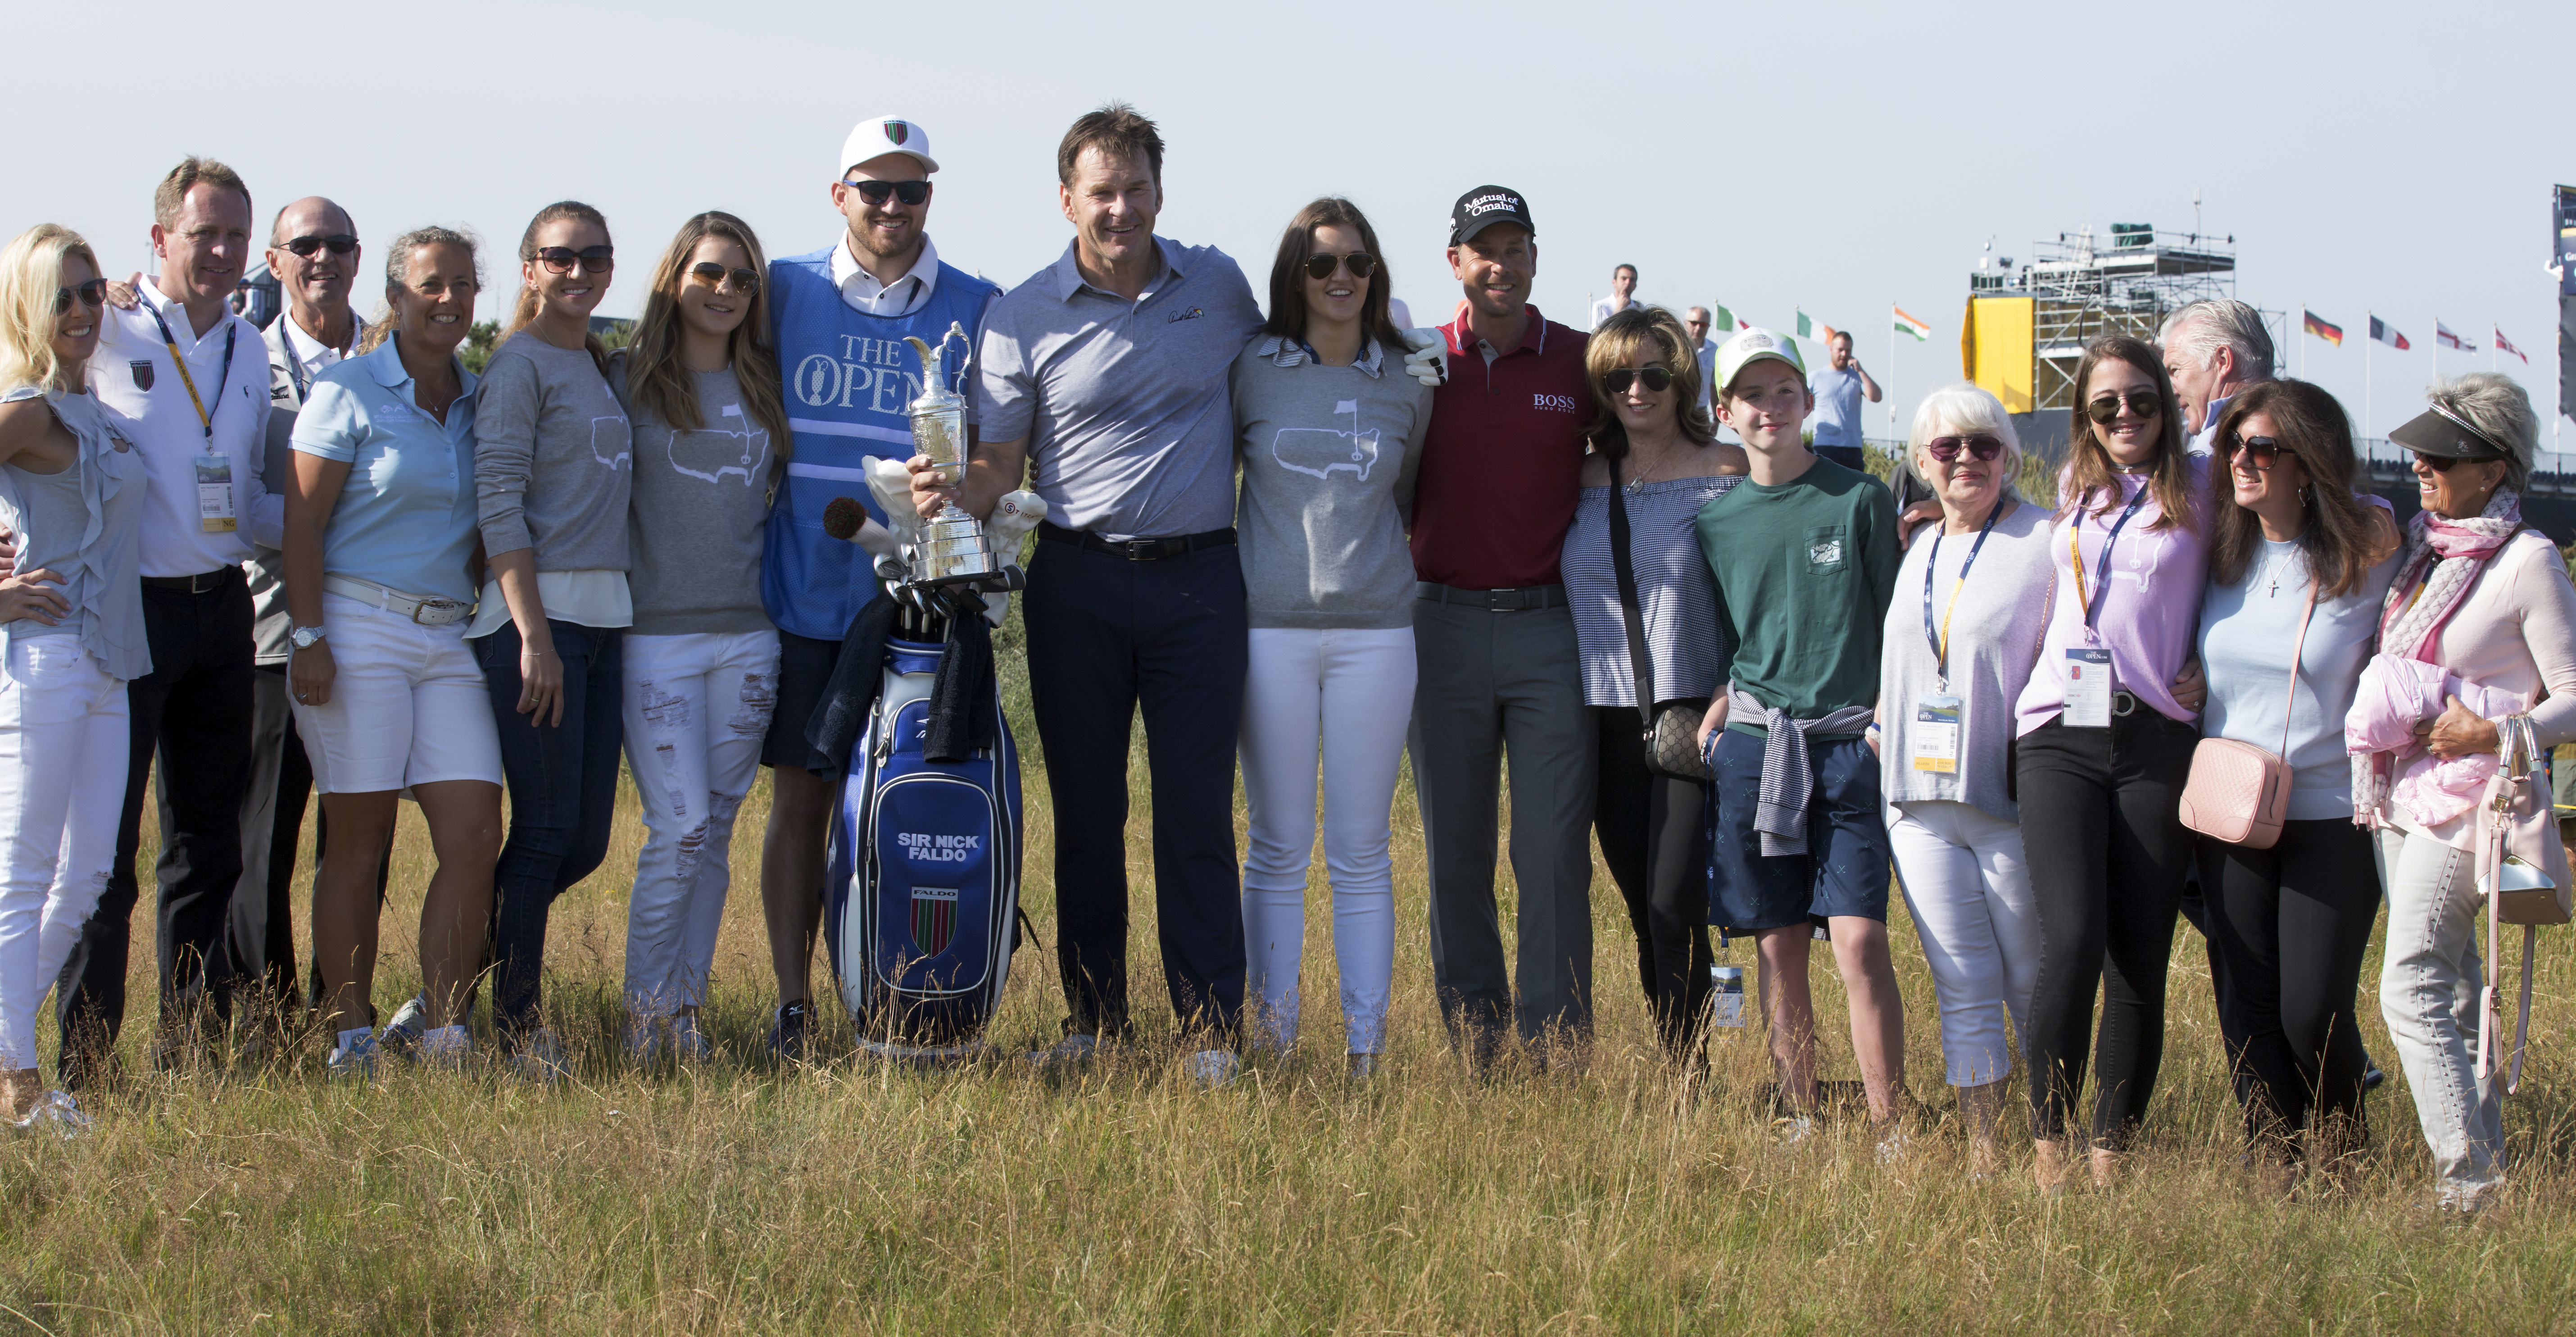 England's Nick Faldo, center, with Sweden's Henrik Stenson, center right, and family and friends pose near the 1st tee with the trophy prior to a practice round ahead of the British Open Golf Championship, at Royal Birkdale, Southport, England Tuesday, Ju